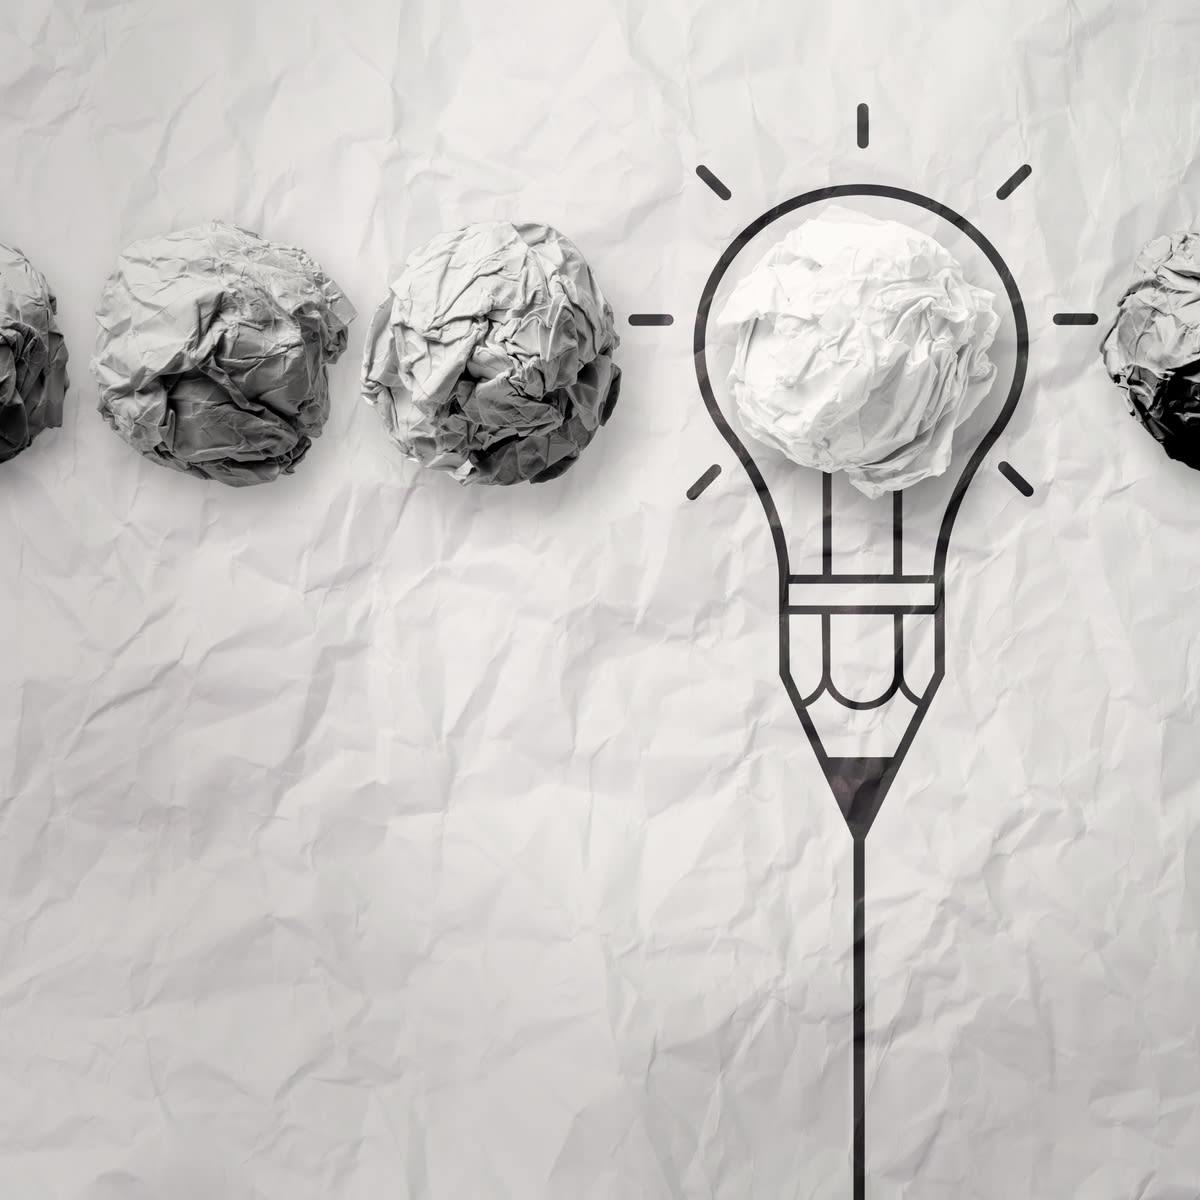 Don't wait to perfect your marketing ideas